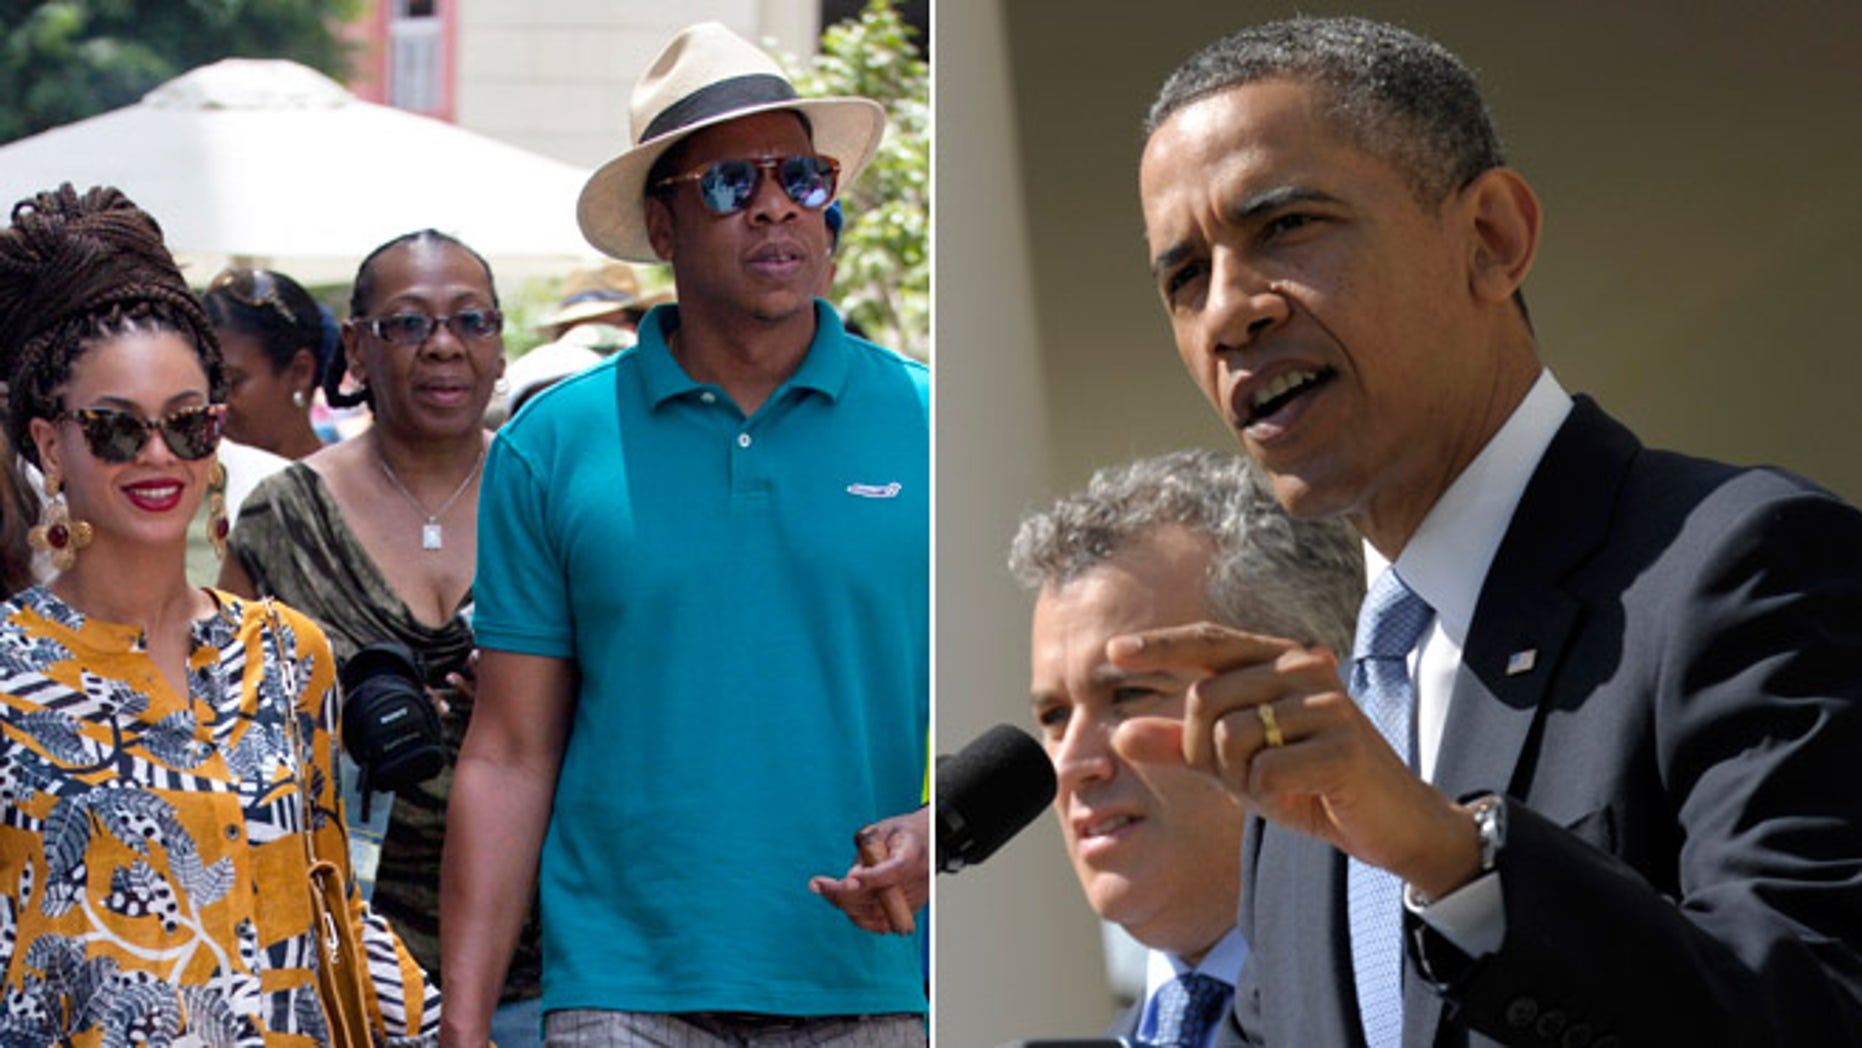 Married musicians Beyonce, left, and rapper Jay-Z, during an April 4, 2013 trip to Cuba, and President Obama.